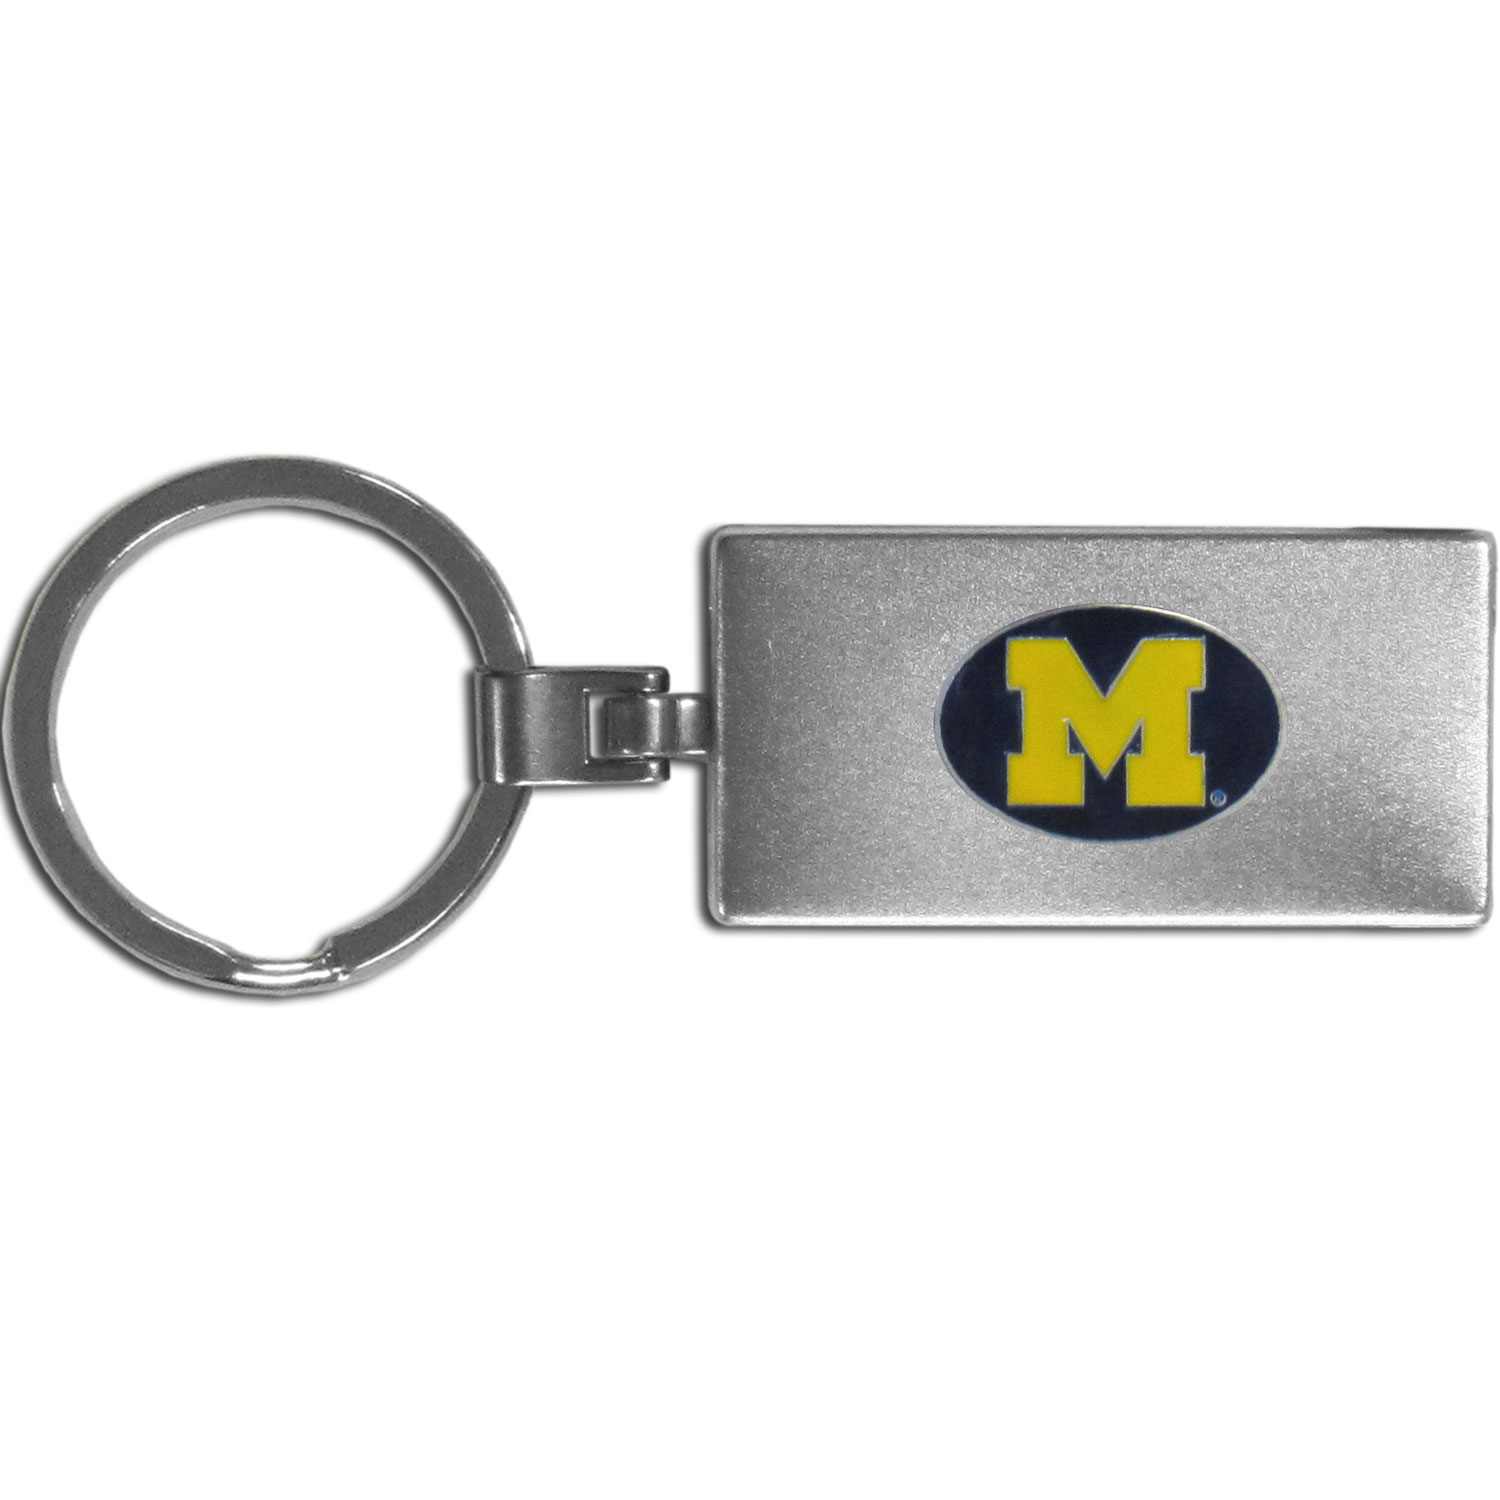 Michigan Wolverines Multi-tool Key Chain - Be the hero at the tailgate, camping, or on a Friday night with your Michigan Wolverines Multi-Tool Keychain which comes complete with bottle opener, scissors, knife, nail file and screw driver. Be it opening a package or a beverage Siskiyou's Multi-Tool Keychain goes wherever your keys do. The keychain hangs at 4 inches long when closed.